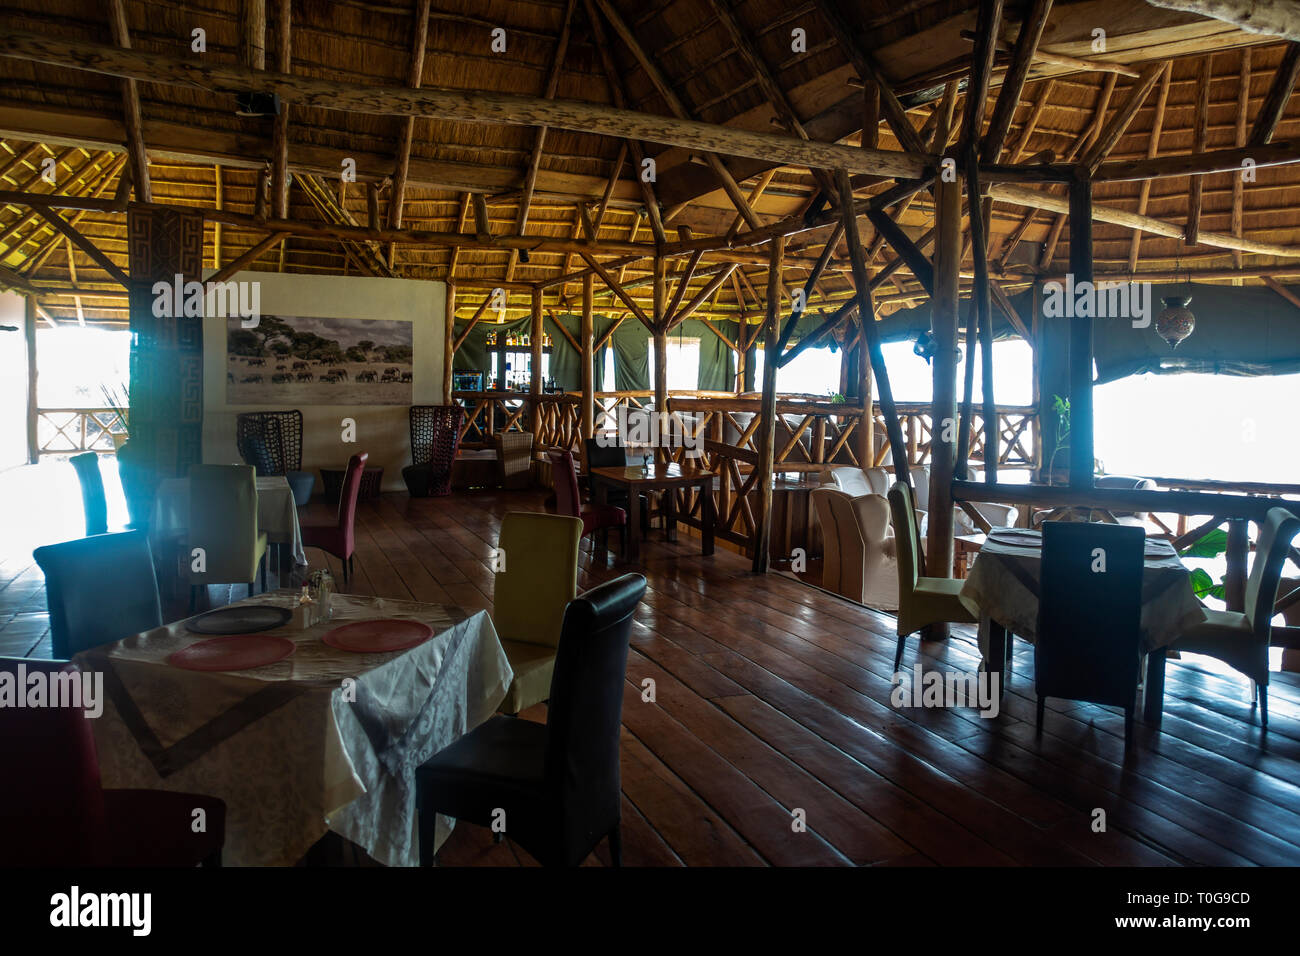 Interior of Crater Safari Lodge located close to Kibale Forest National Park in South West Uganda, East Africa Stock Photo